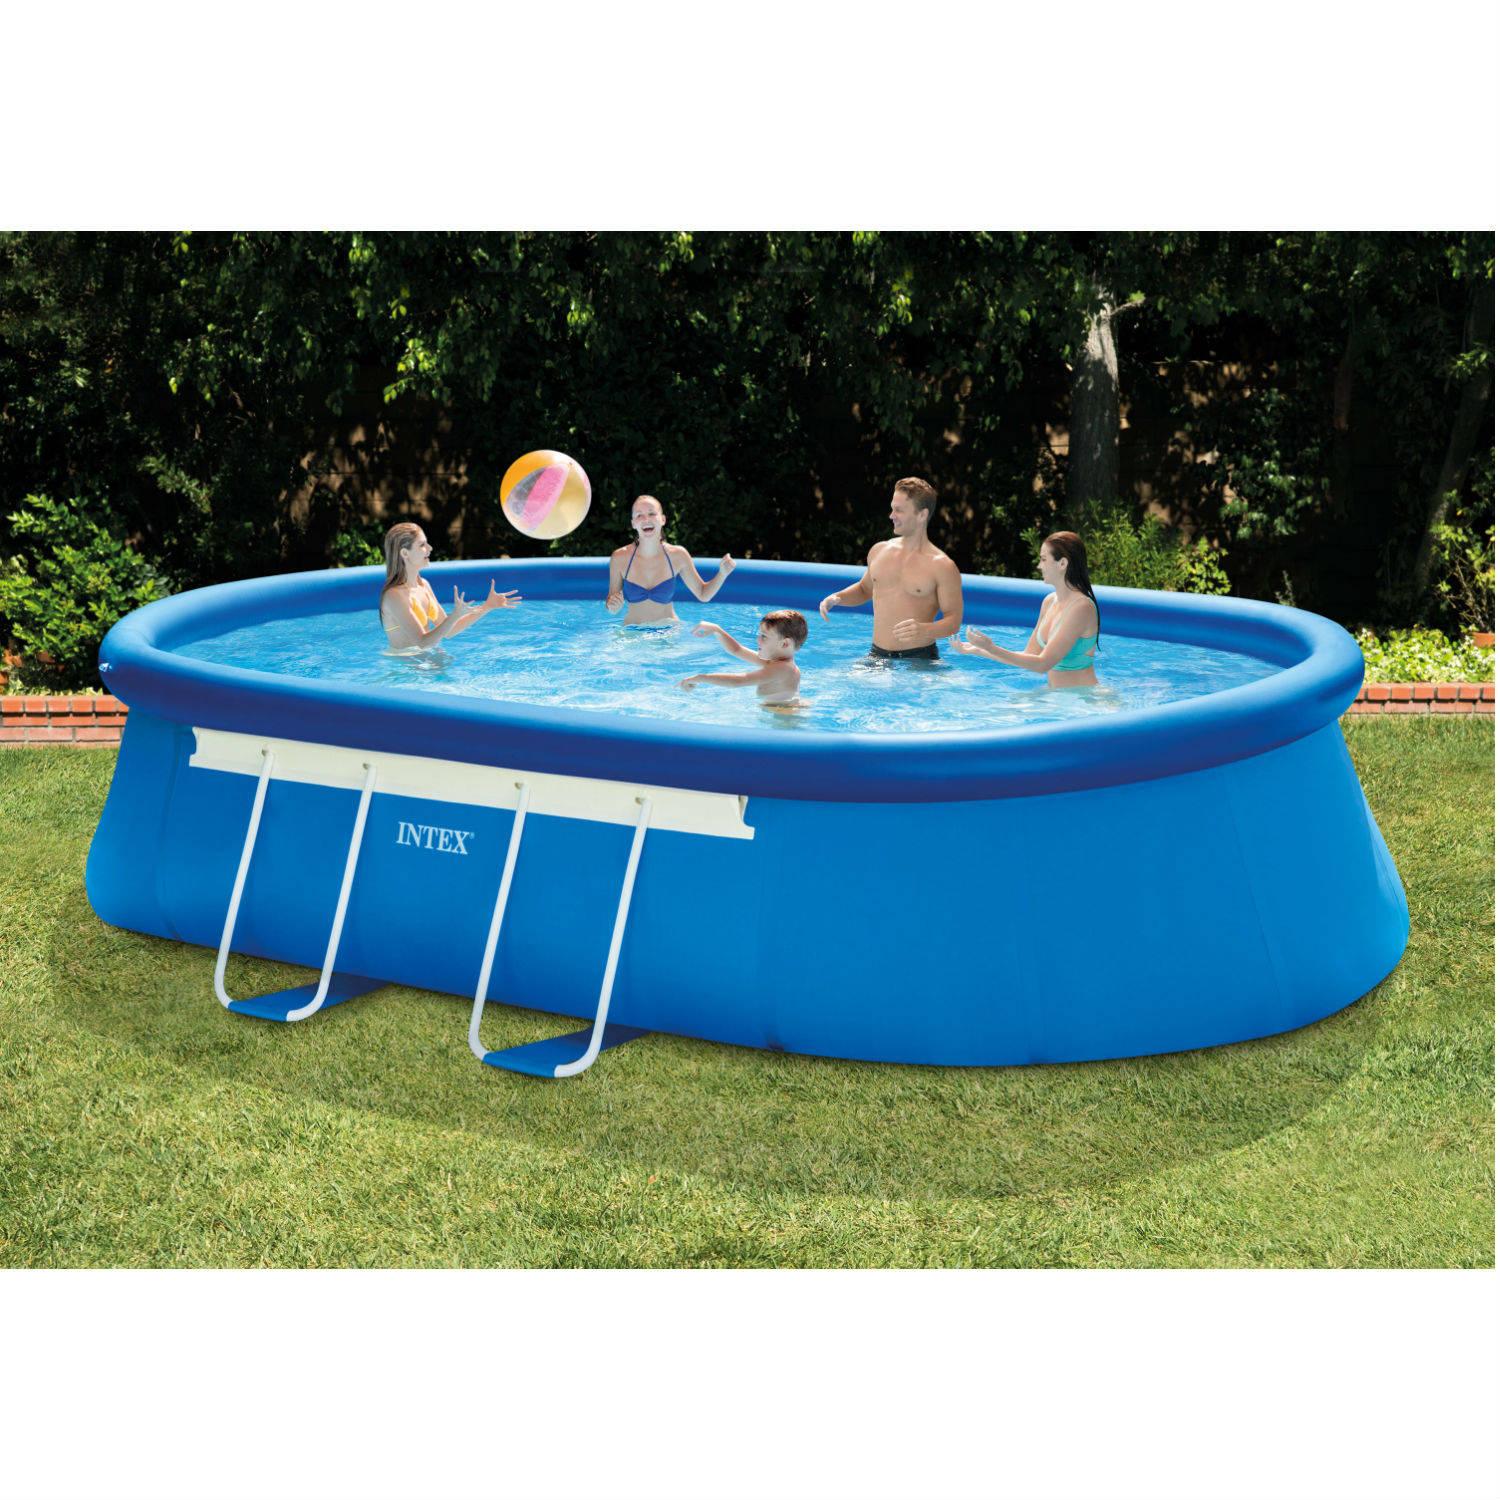 "Intex 18' x 10' x 42"" Oval Frame Above Ground Swimming Pool with Filter Pump by Intex"